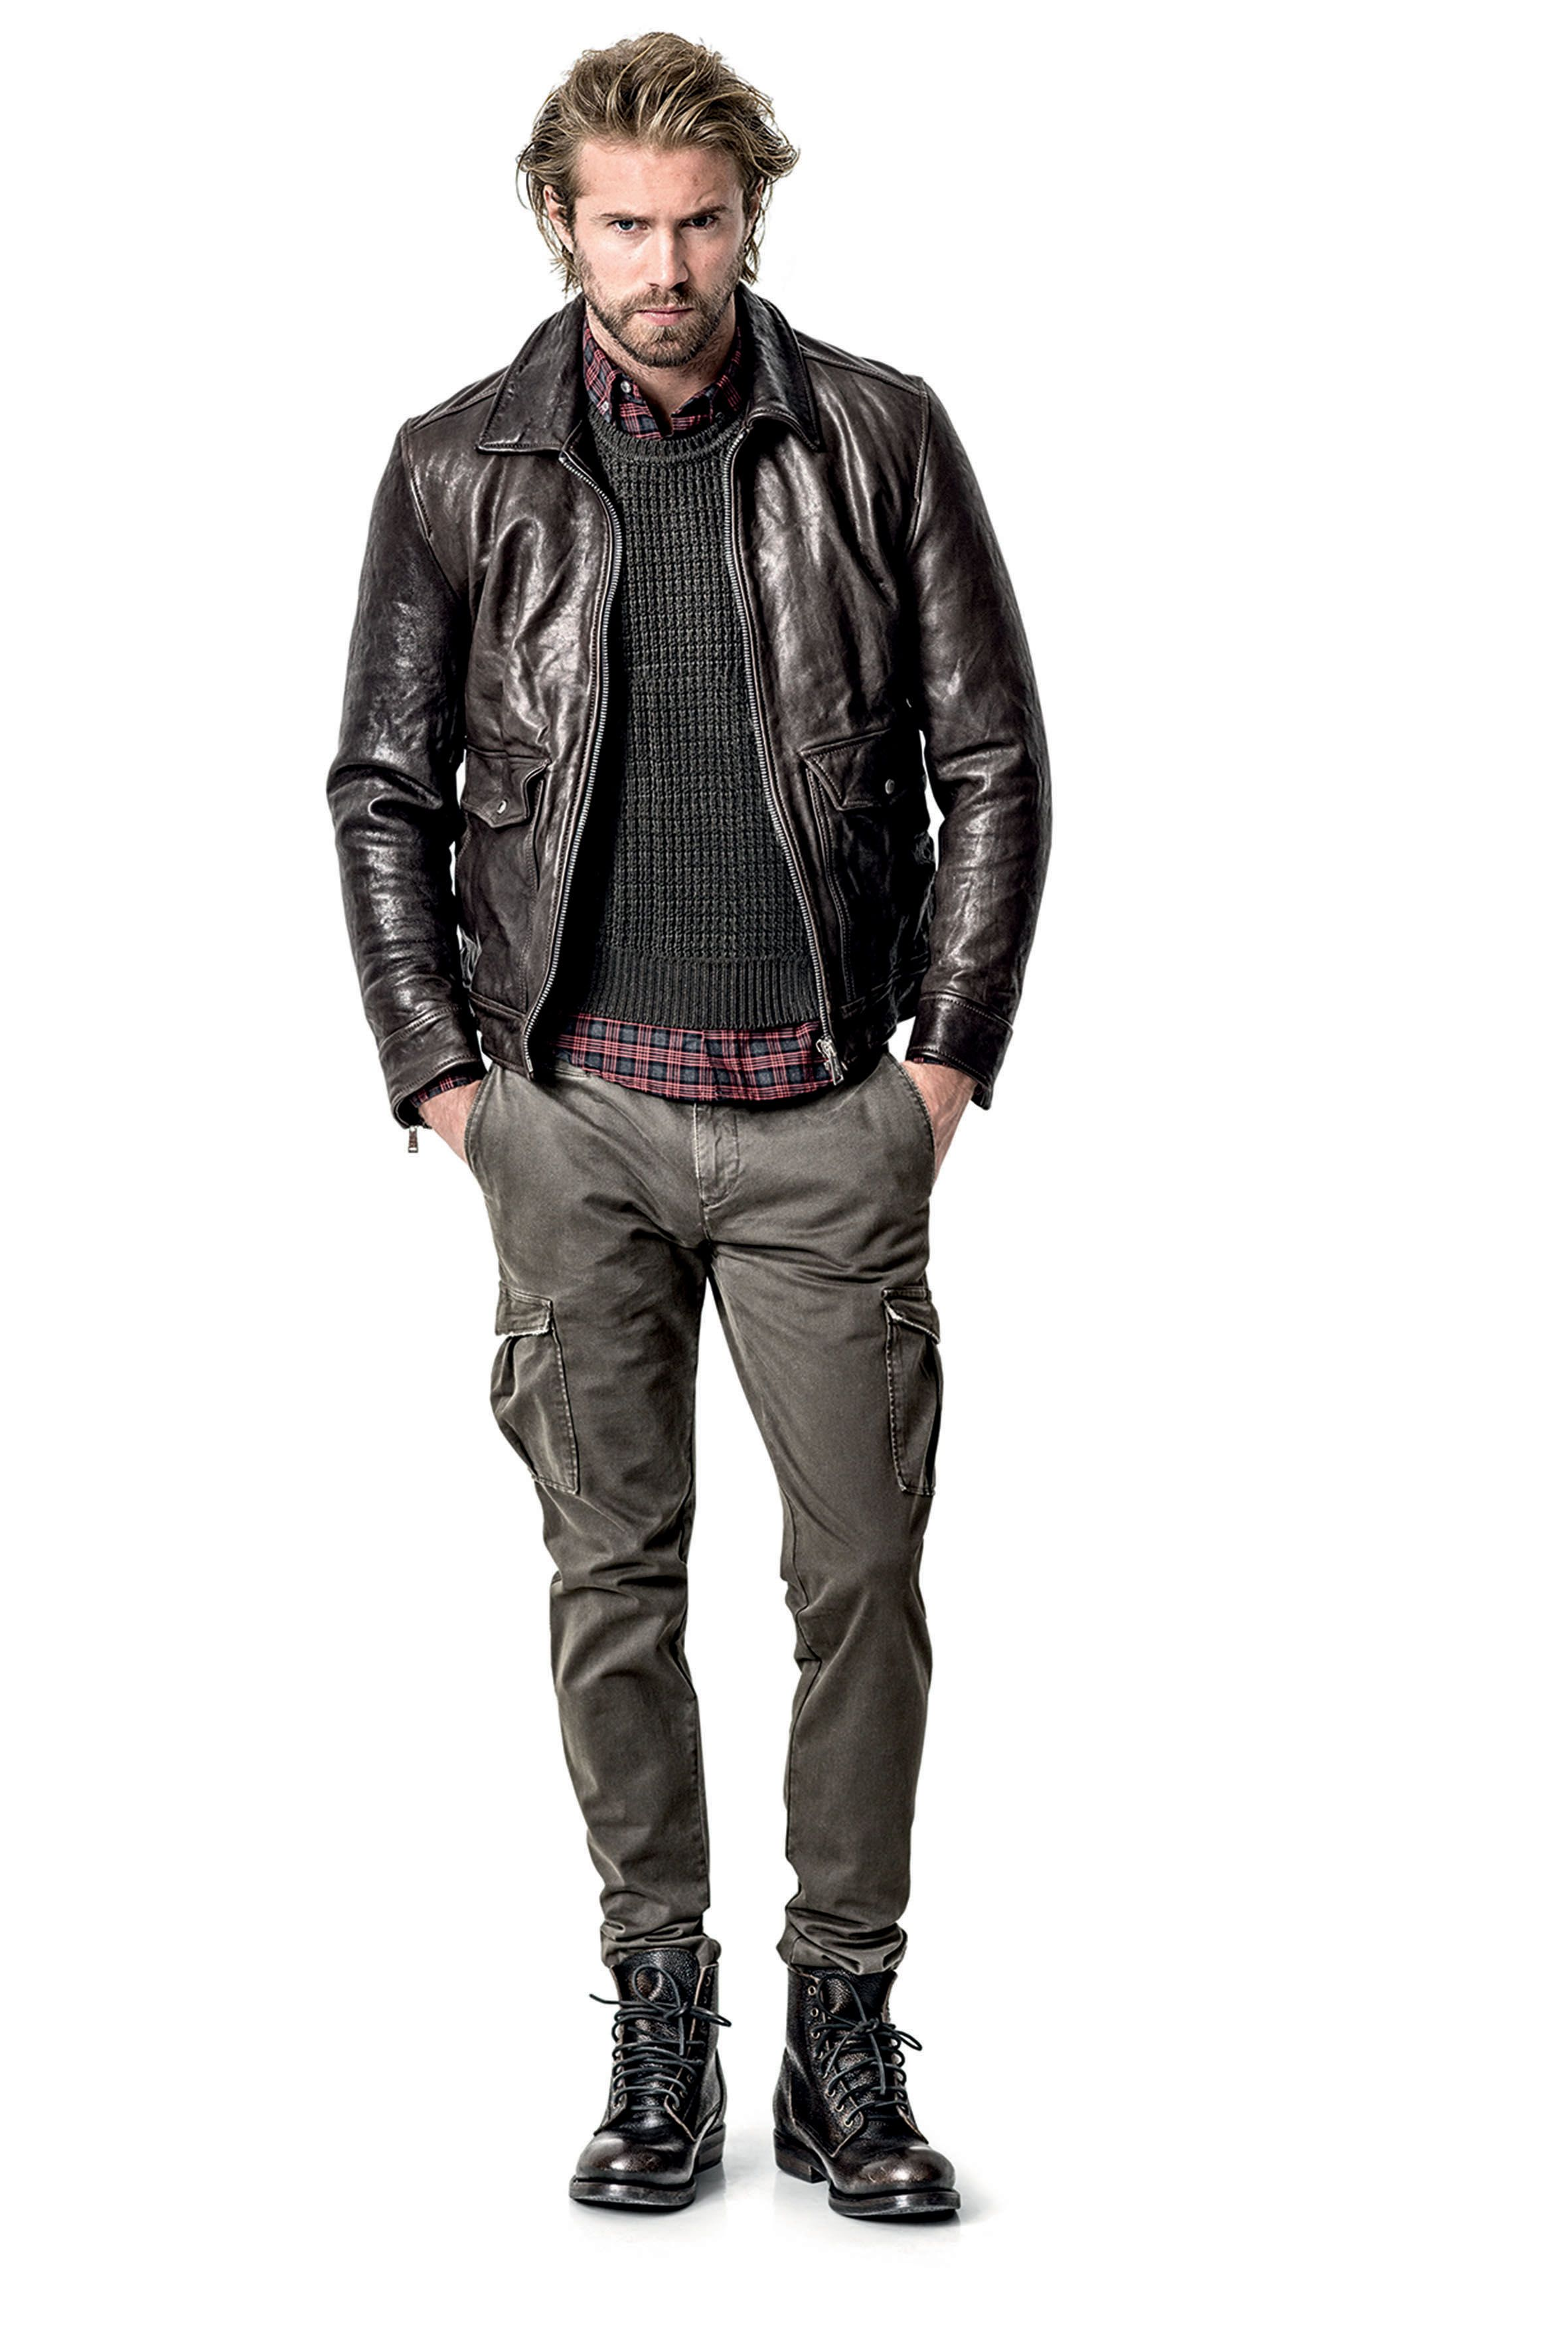 7 For All mankind - #menswear #style #jacket #brown #leather #